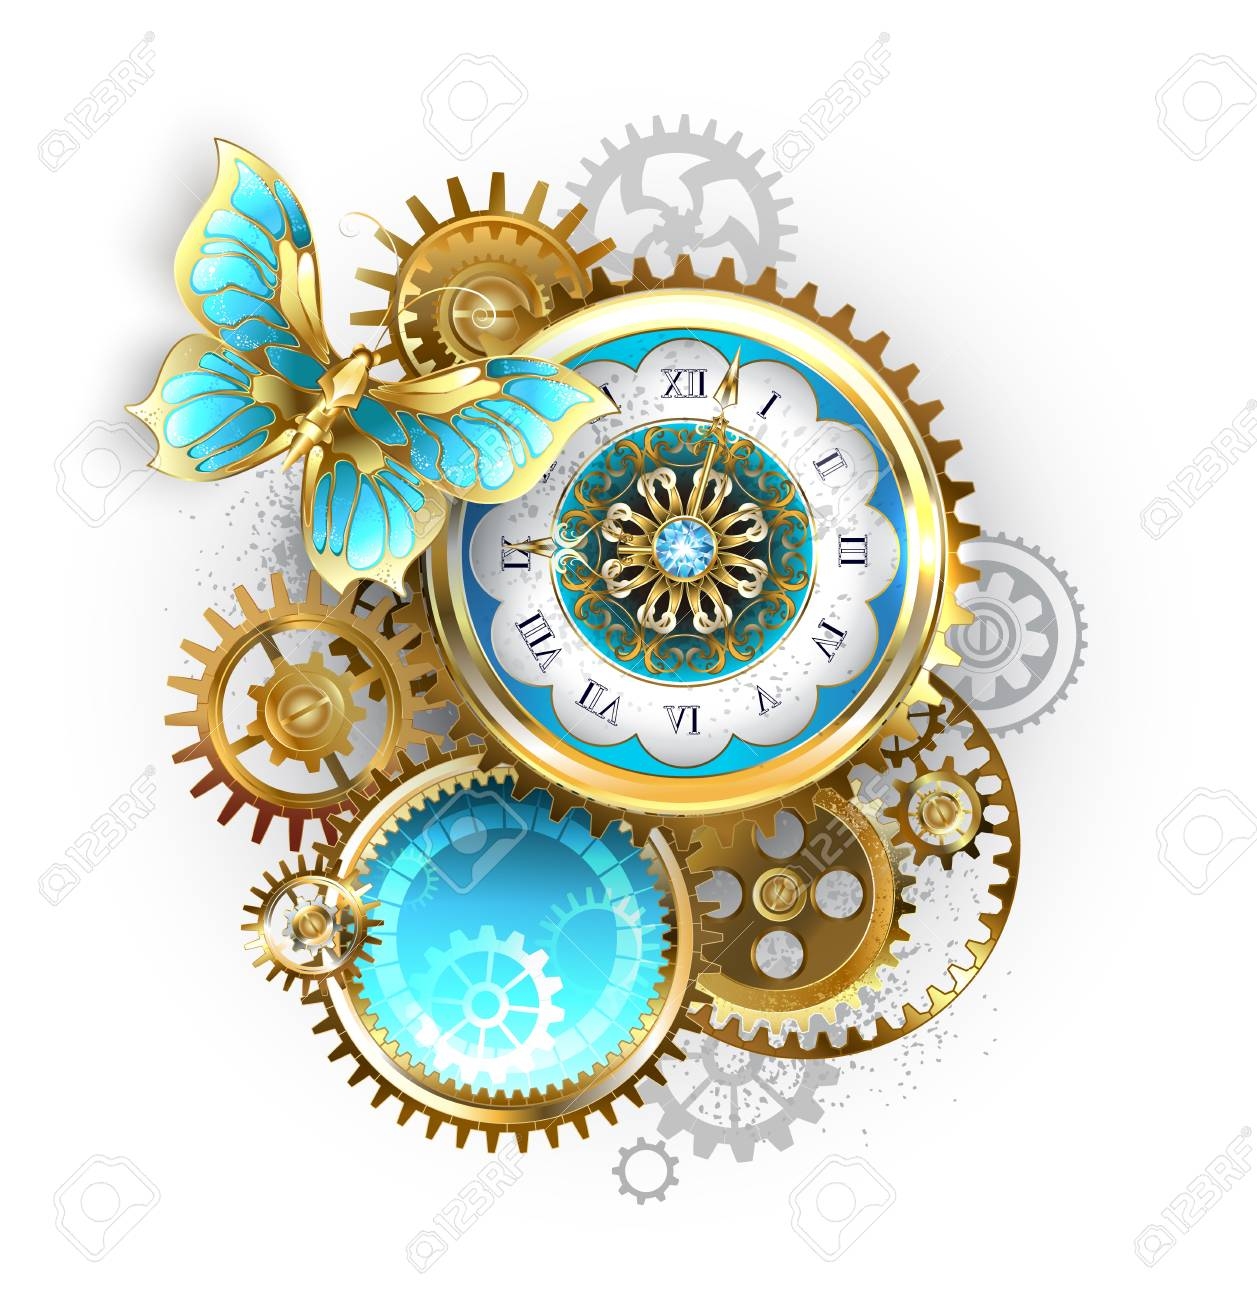 Antique clock, decorated with pattern, with gold butterfly and gold and brass gears on white background. Steampunk. - 109627882